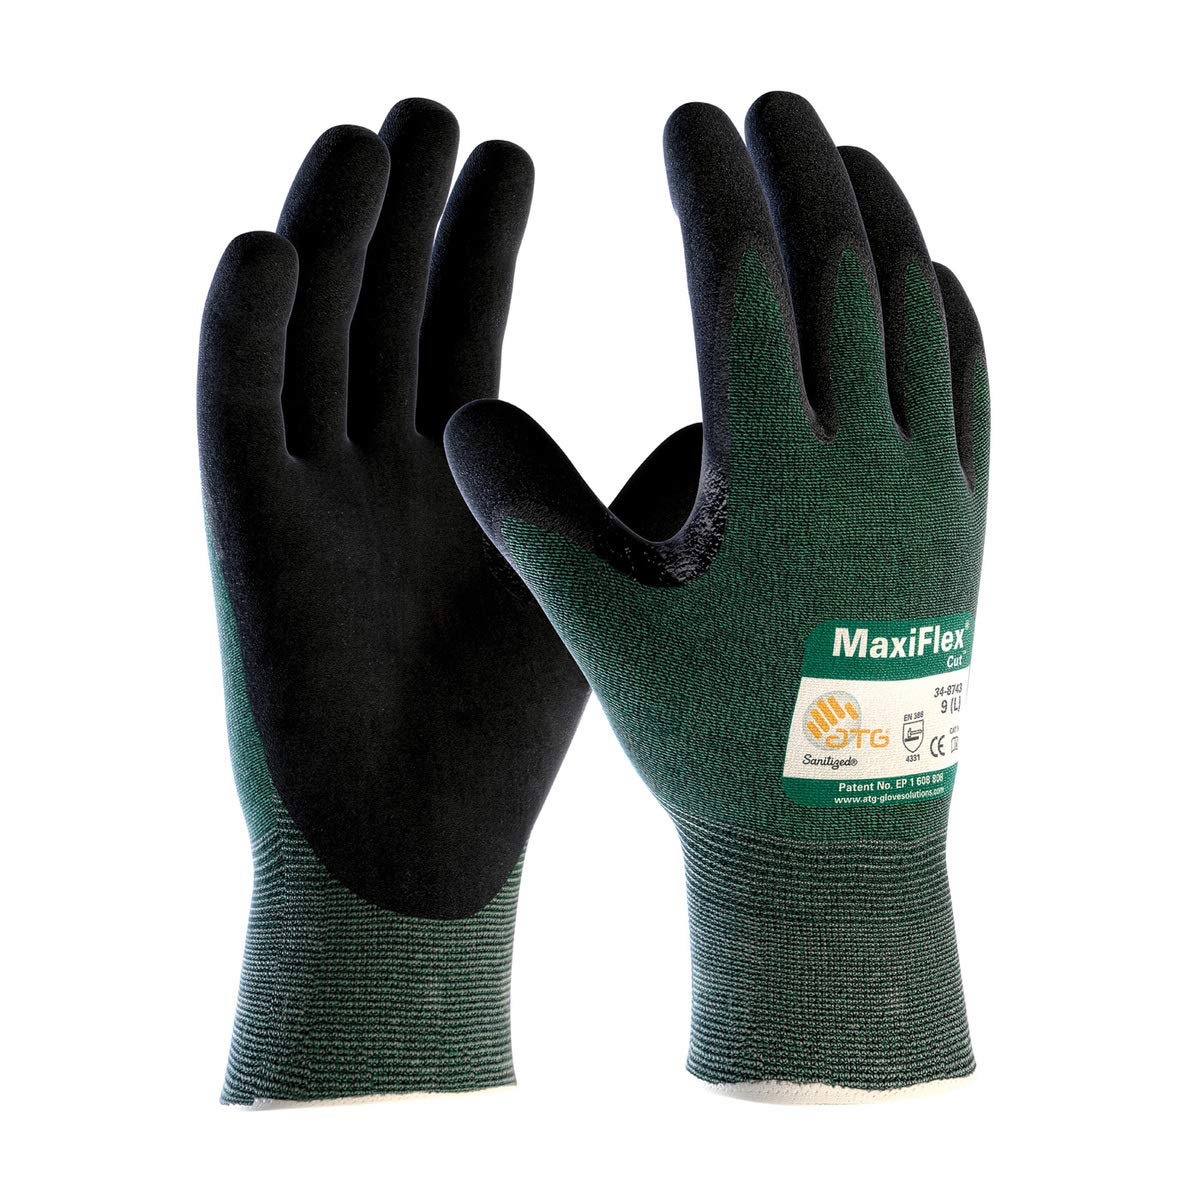 Protective Industrial Products Size 2X MaxiFlex Cut by ATG Nitrile Work Gloves With Engineered Yarn Liner And Knit Wrist - Pack of 5